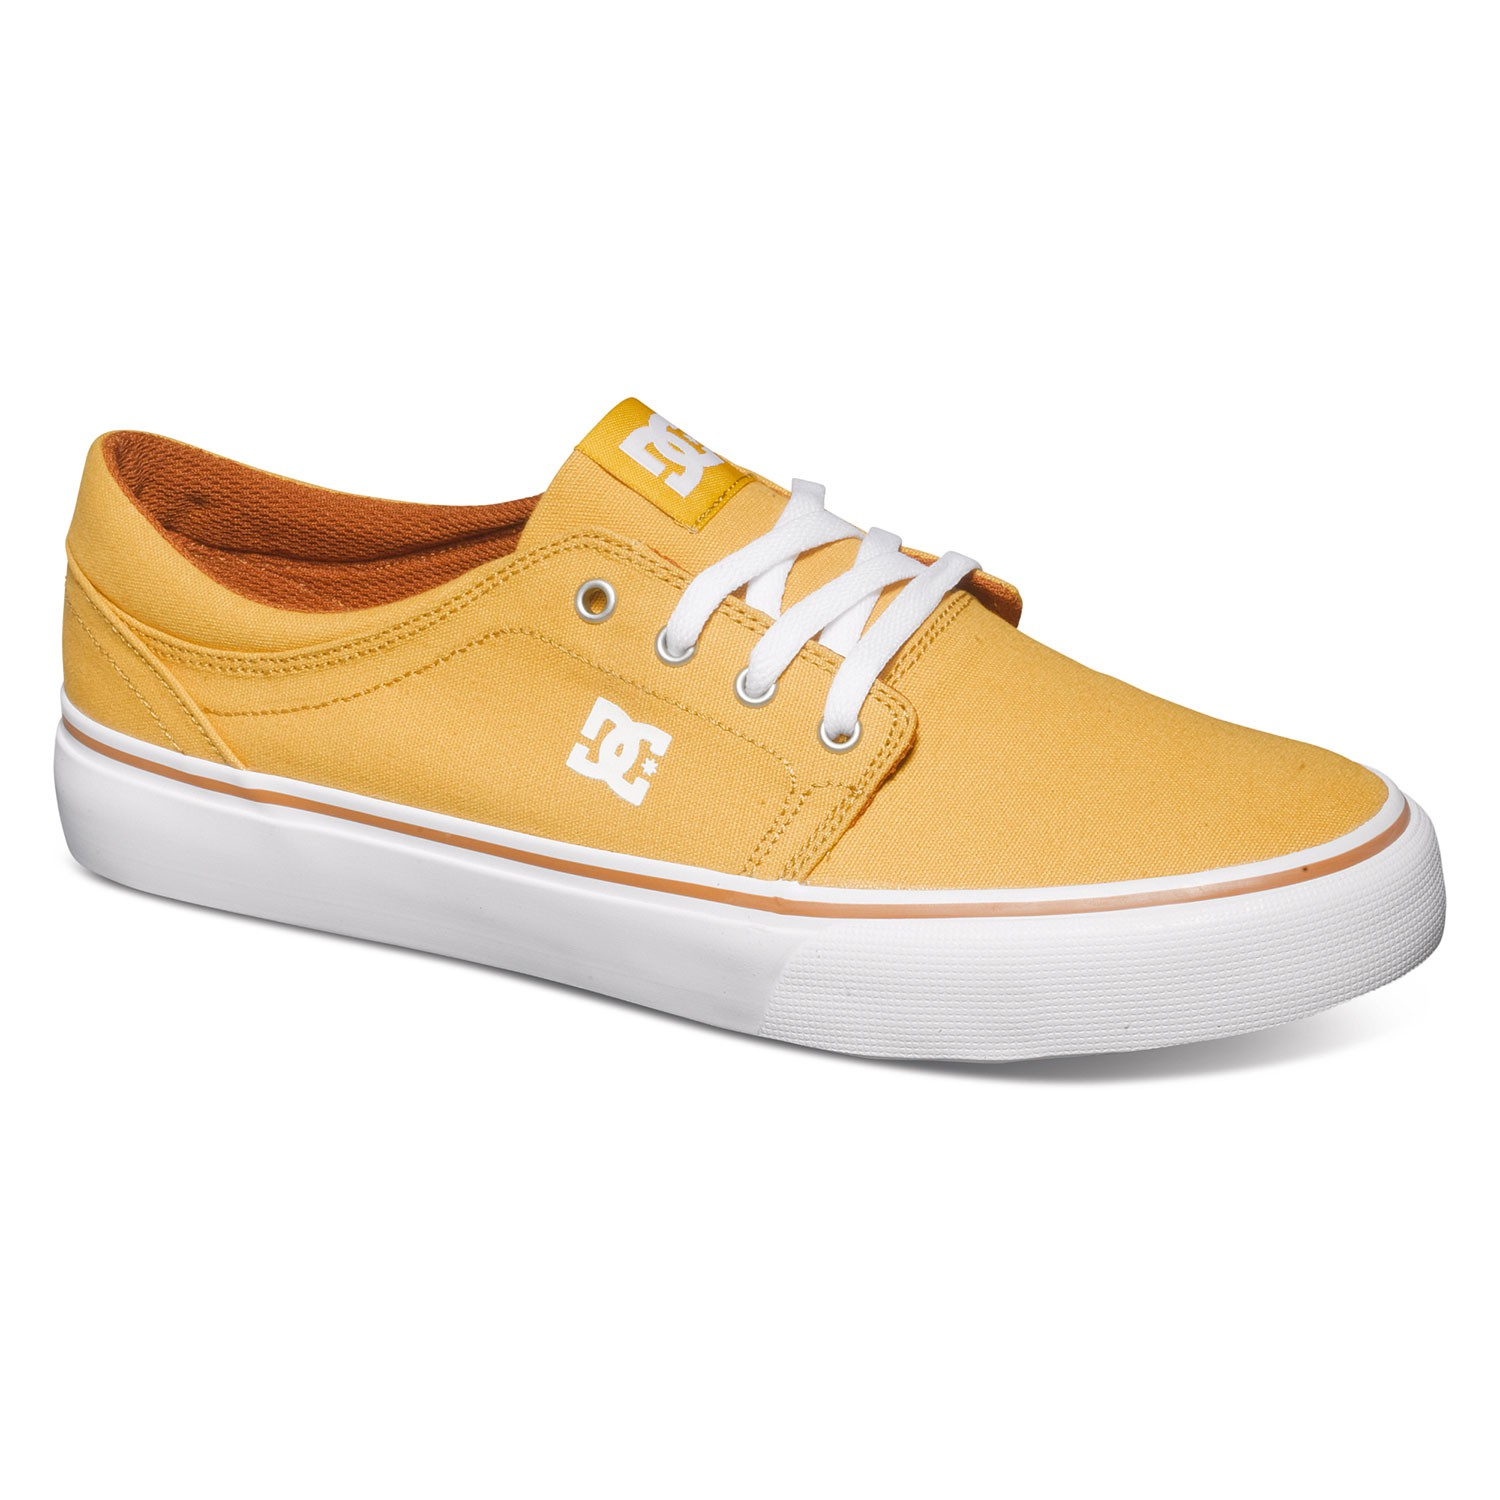 Tenisky DC Trase Tx yellow